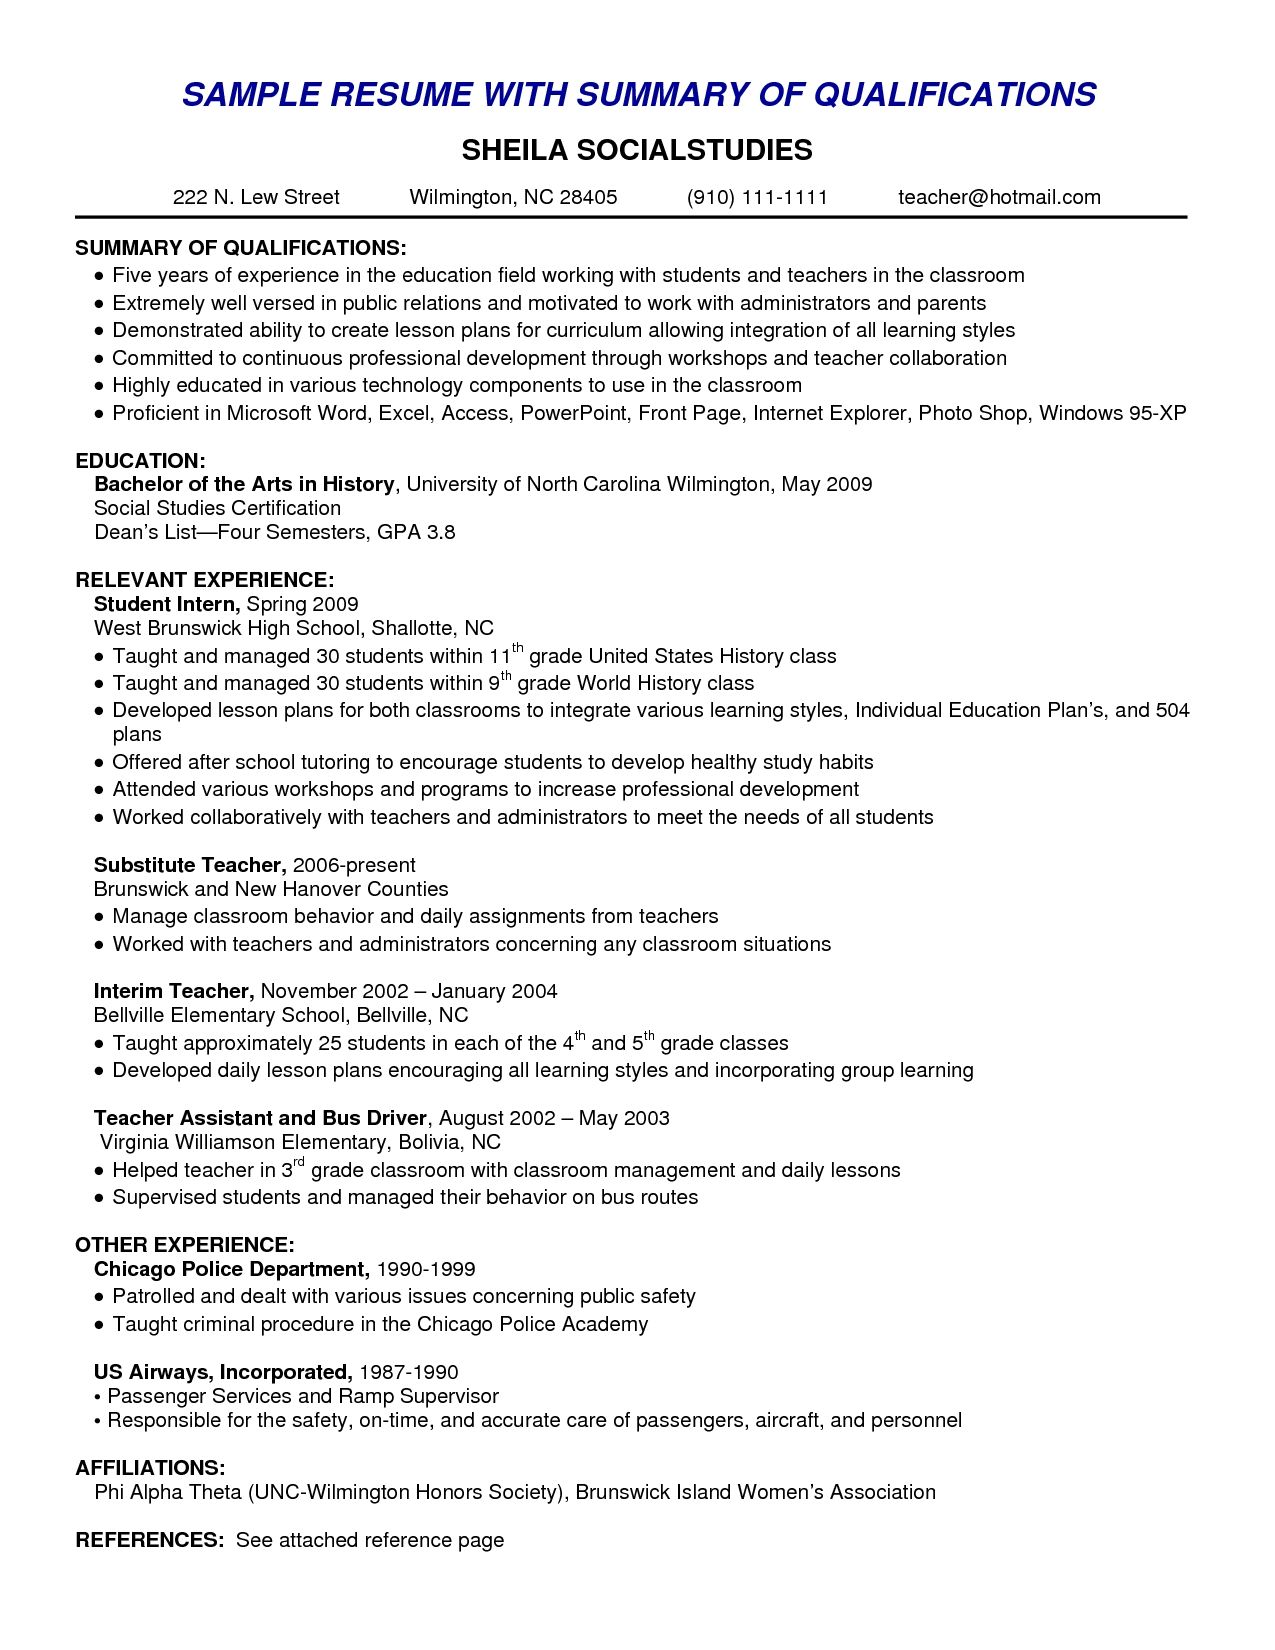 Free Examples Of Resumes Resume Skills Summary Examples Example Of Skills Summary For